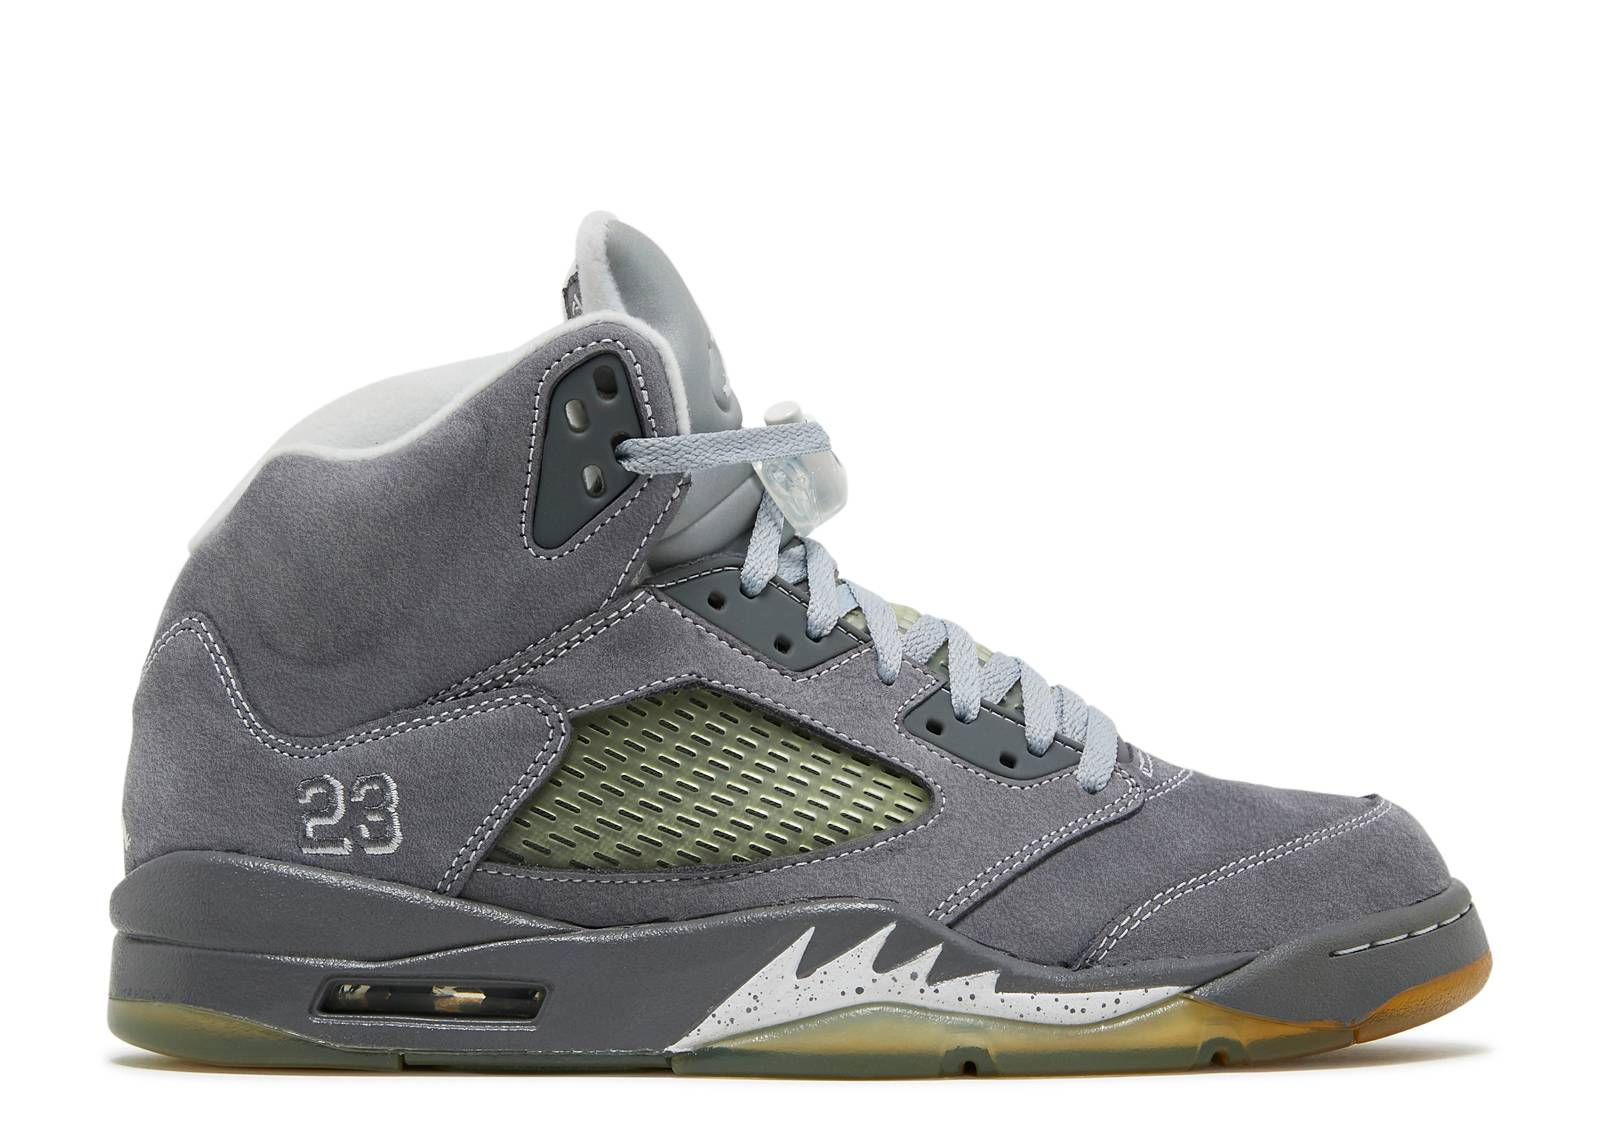 dfcf15b2aa84 Air Jordan 5 Retro